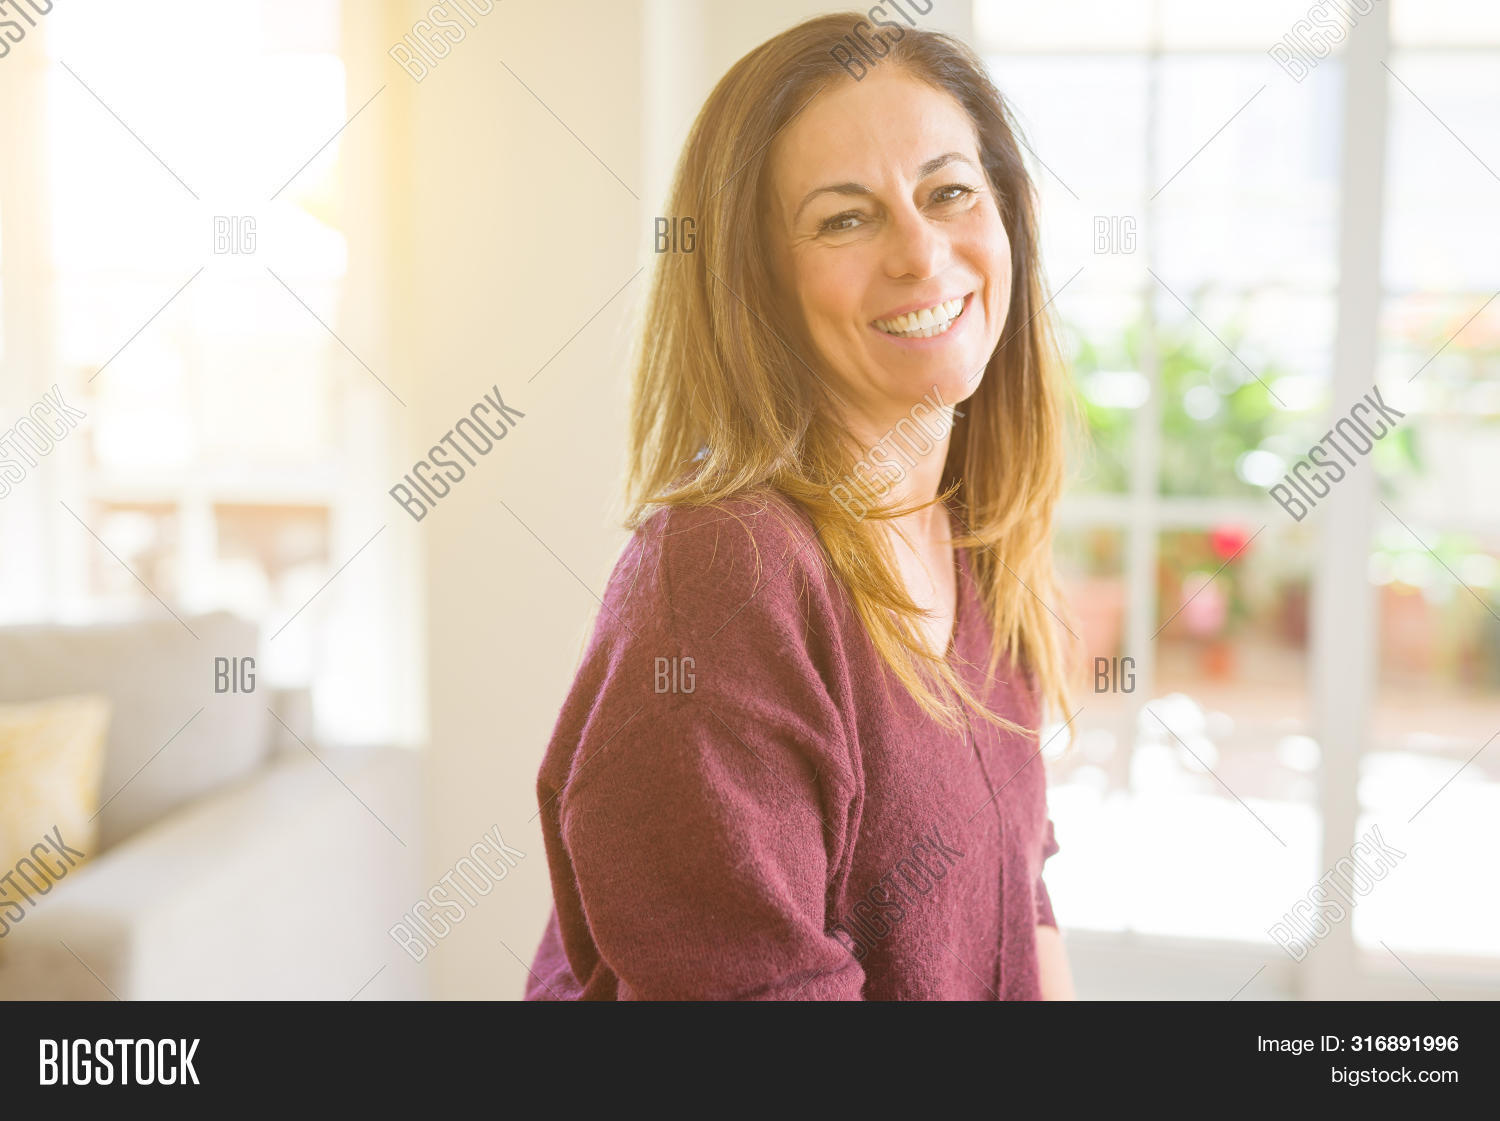 adult,age,aged,attractive,background,beautiful,beauty,bright,casual,caucasian,cheerful,close up,confident,elegant,excited,expression,face,female,fun,gesture,girl,happy,healthy,hispanic,home,house,isolated,lady,lifestyle,living room,looking,mature,middle,middle age,natural,old,older,one,people,person,portrait,pretty,relaxing,senior,smile,smiling,white,window,woman,women